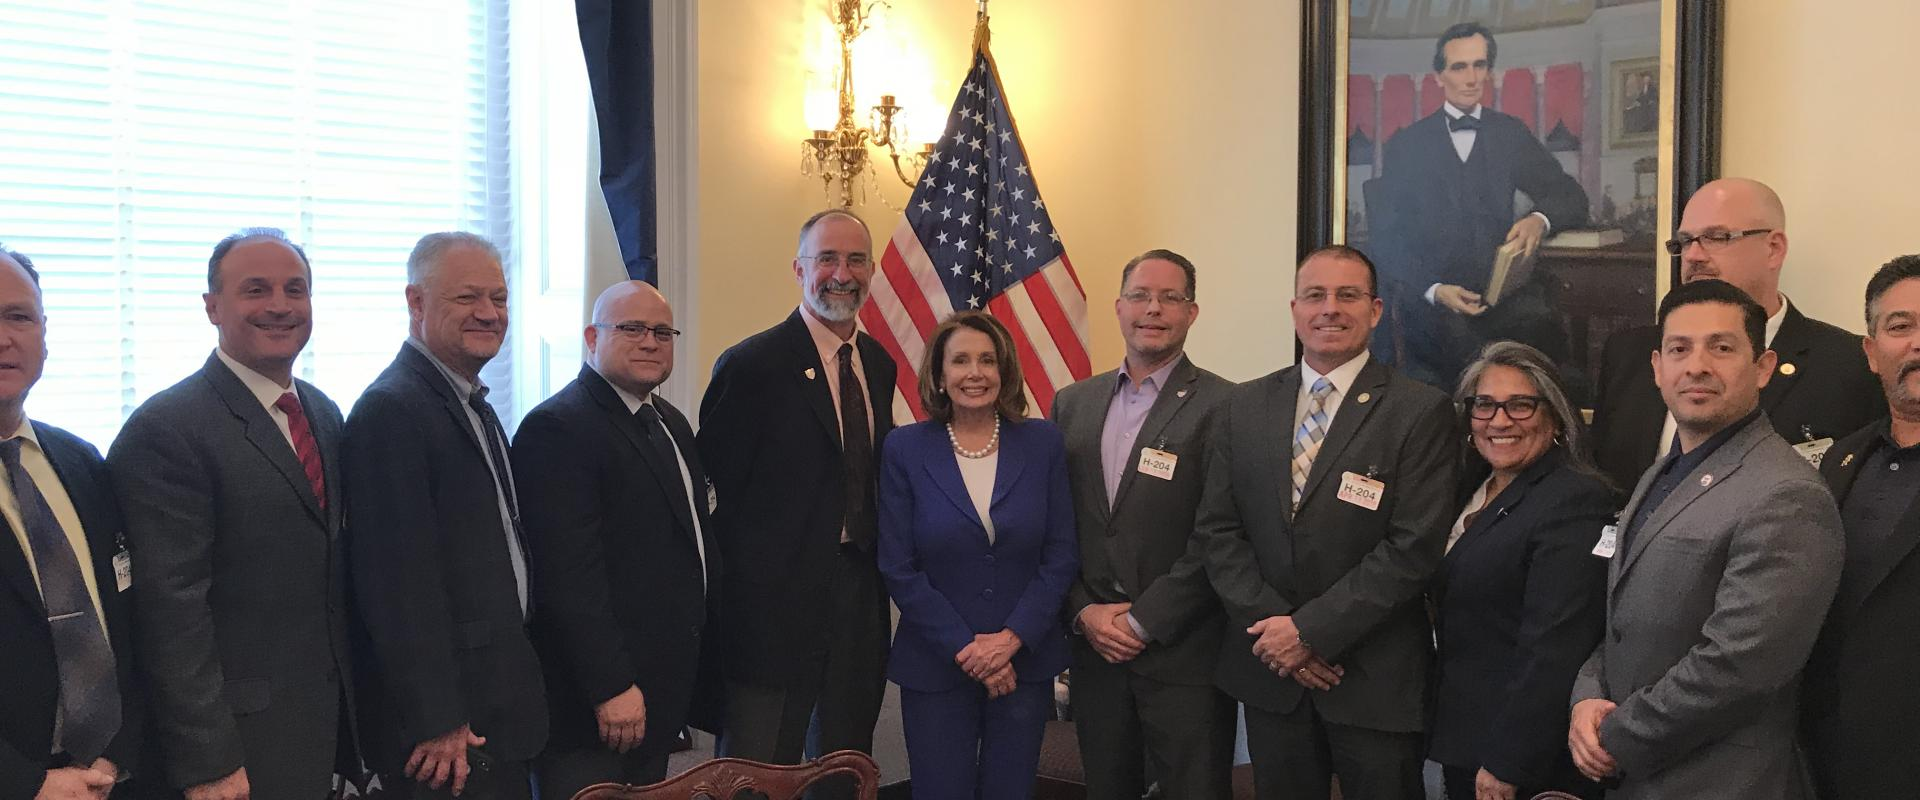 Congresswoman Pelosi meets with representatives of the San Francisco Building & Construction Trades Council where they discussed a Better Deal for Rebuilding America and she congratulated Secretary-Treasurer Michael Theriault on his upcoming retirement.